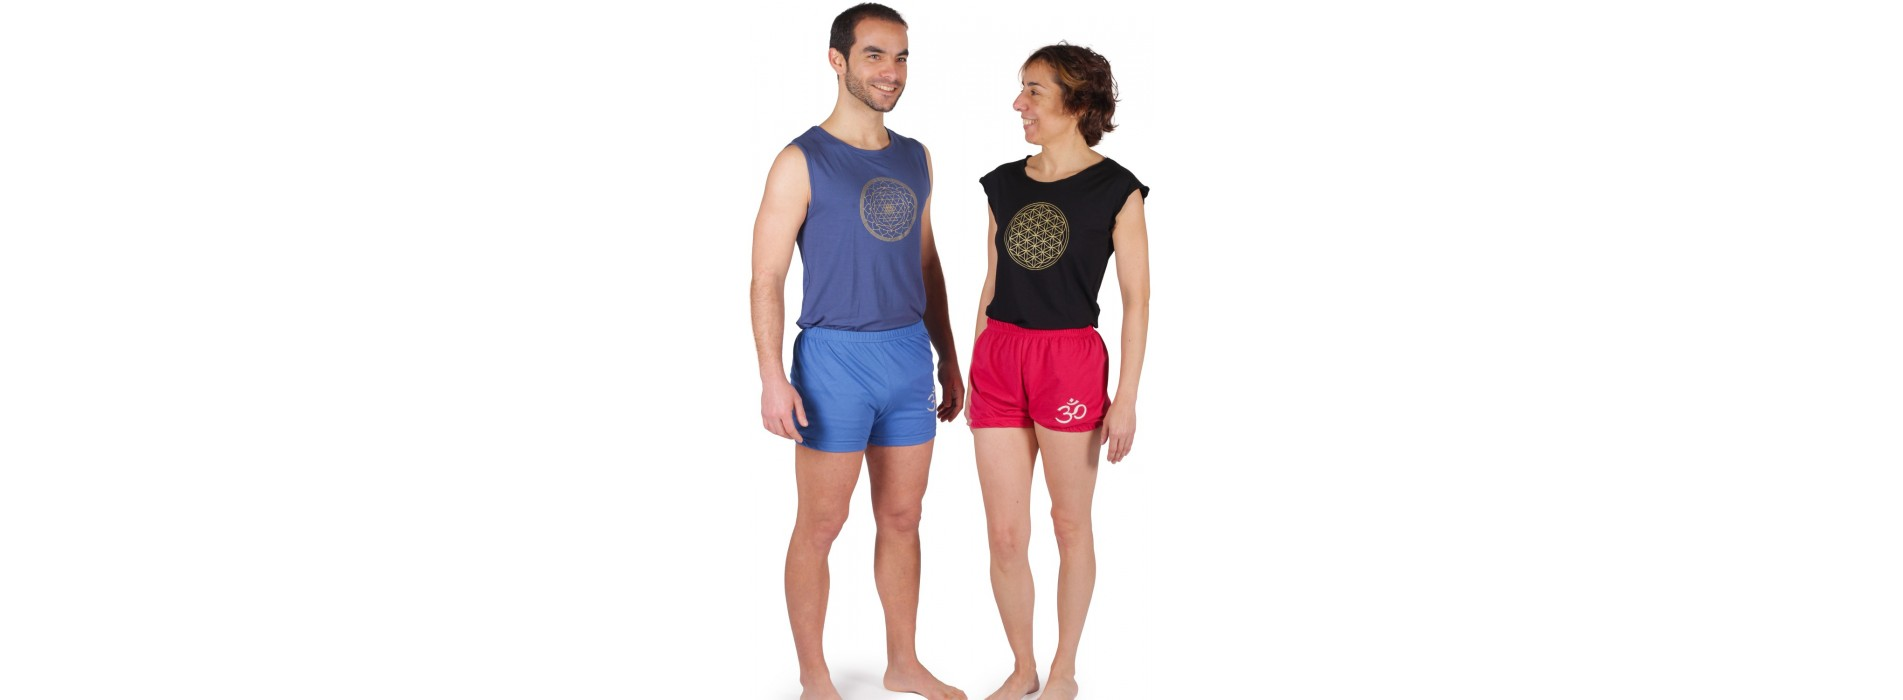 Ropa para yoga There are 32 products. f185432236a0